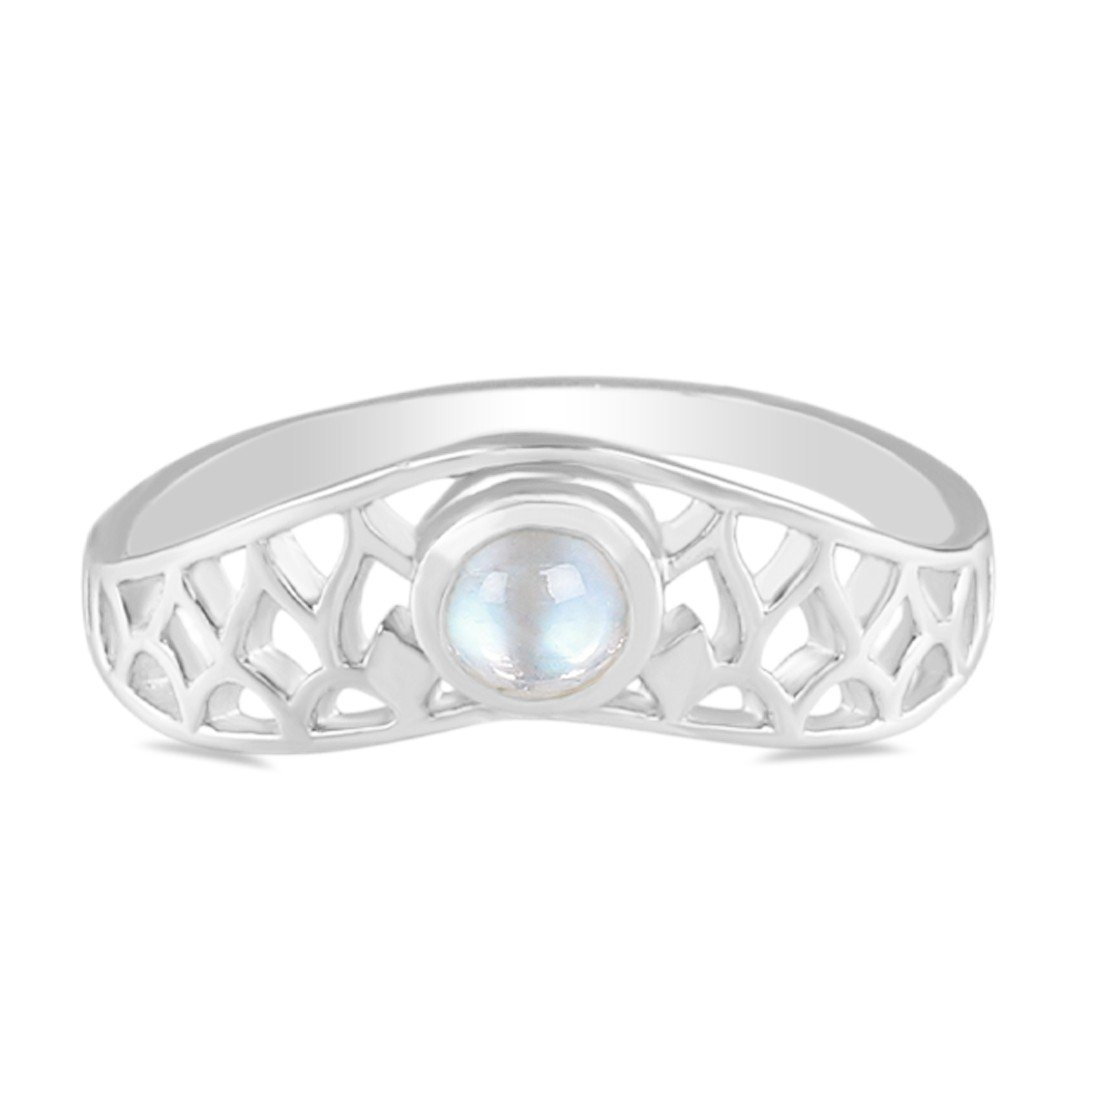 Moonstone Ring-Meshed Moon Sale Item 925 SILVER & MOONSTONE